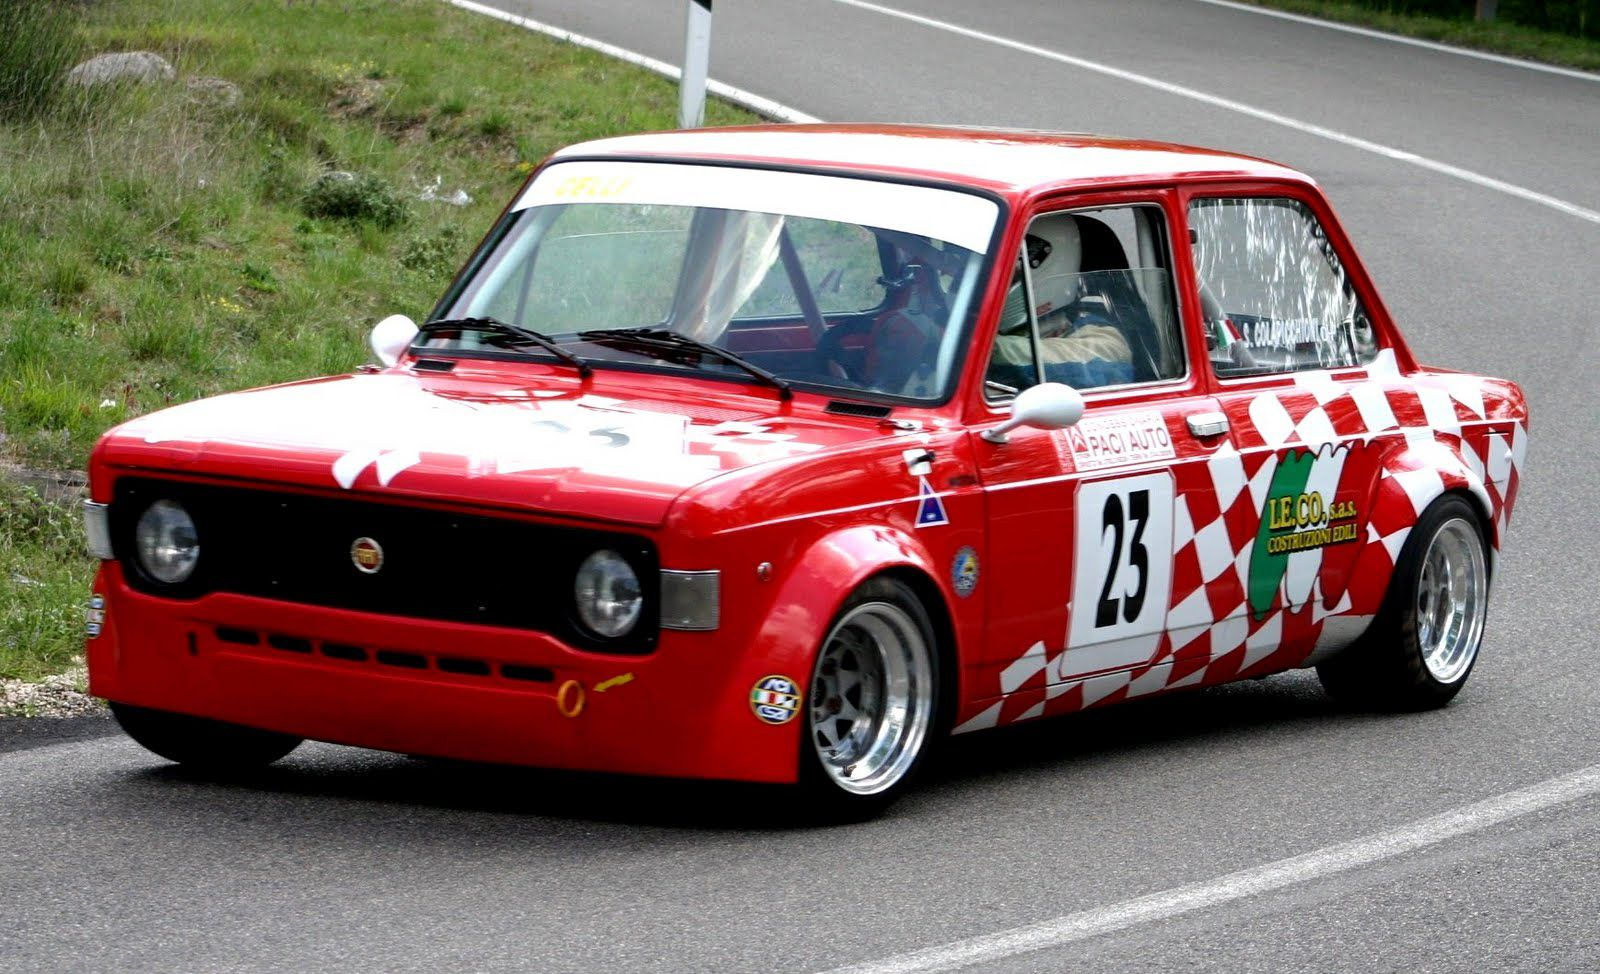 fiat 128 race car classic cars pinterest fiat 128 fiat and cars. Black Bedroom Furniture Sets. Home Design Ideas